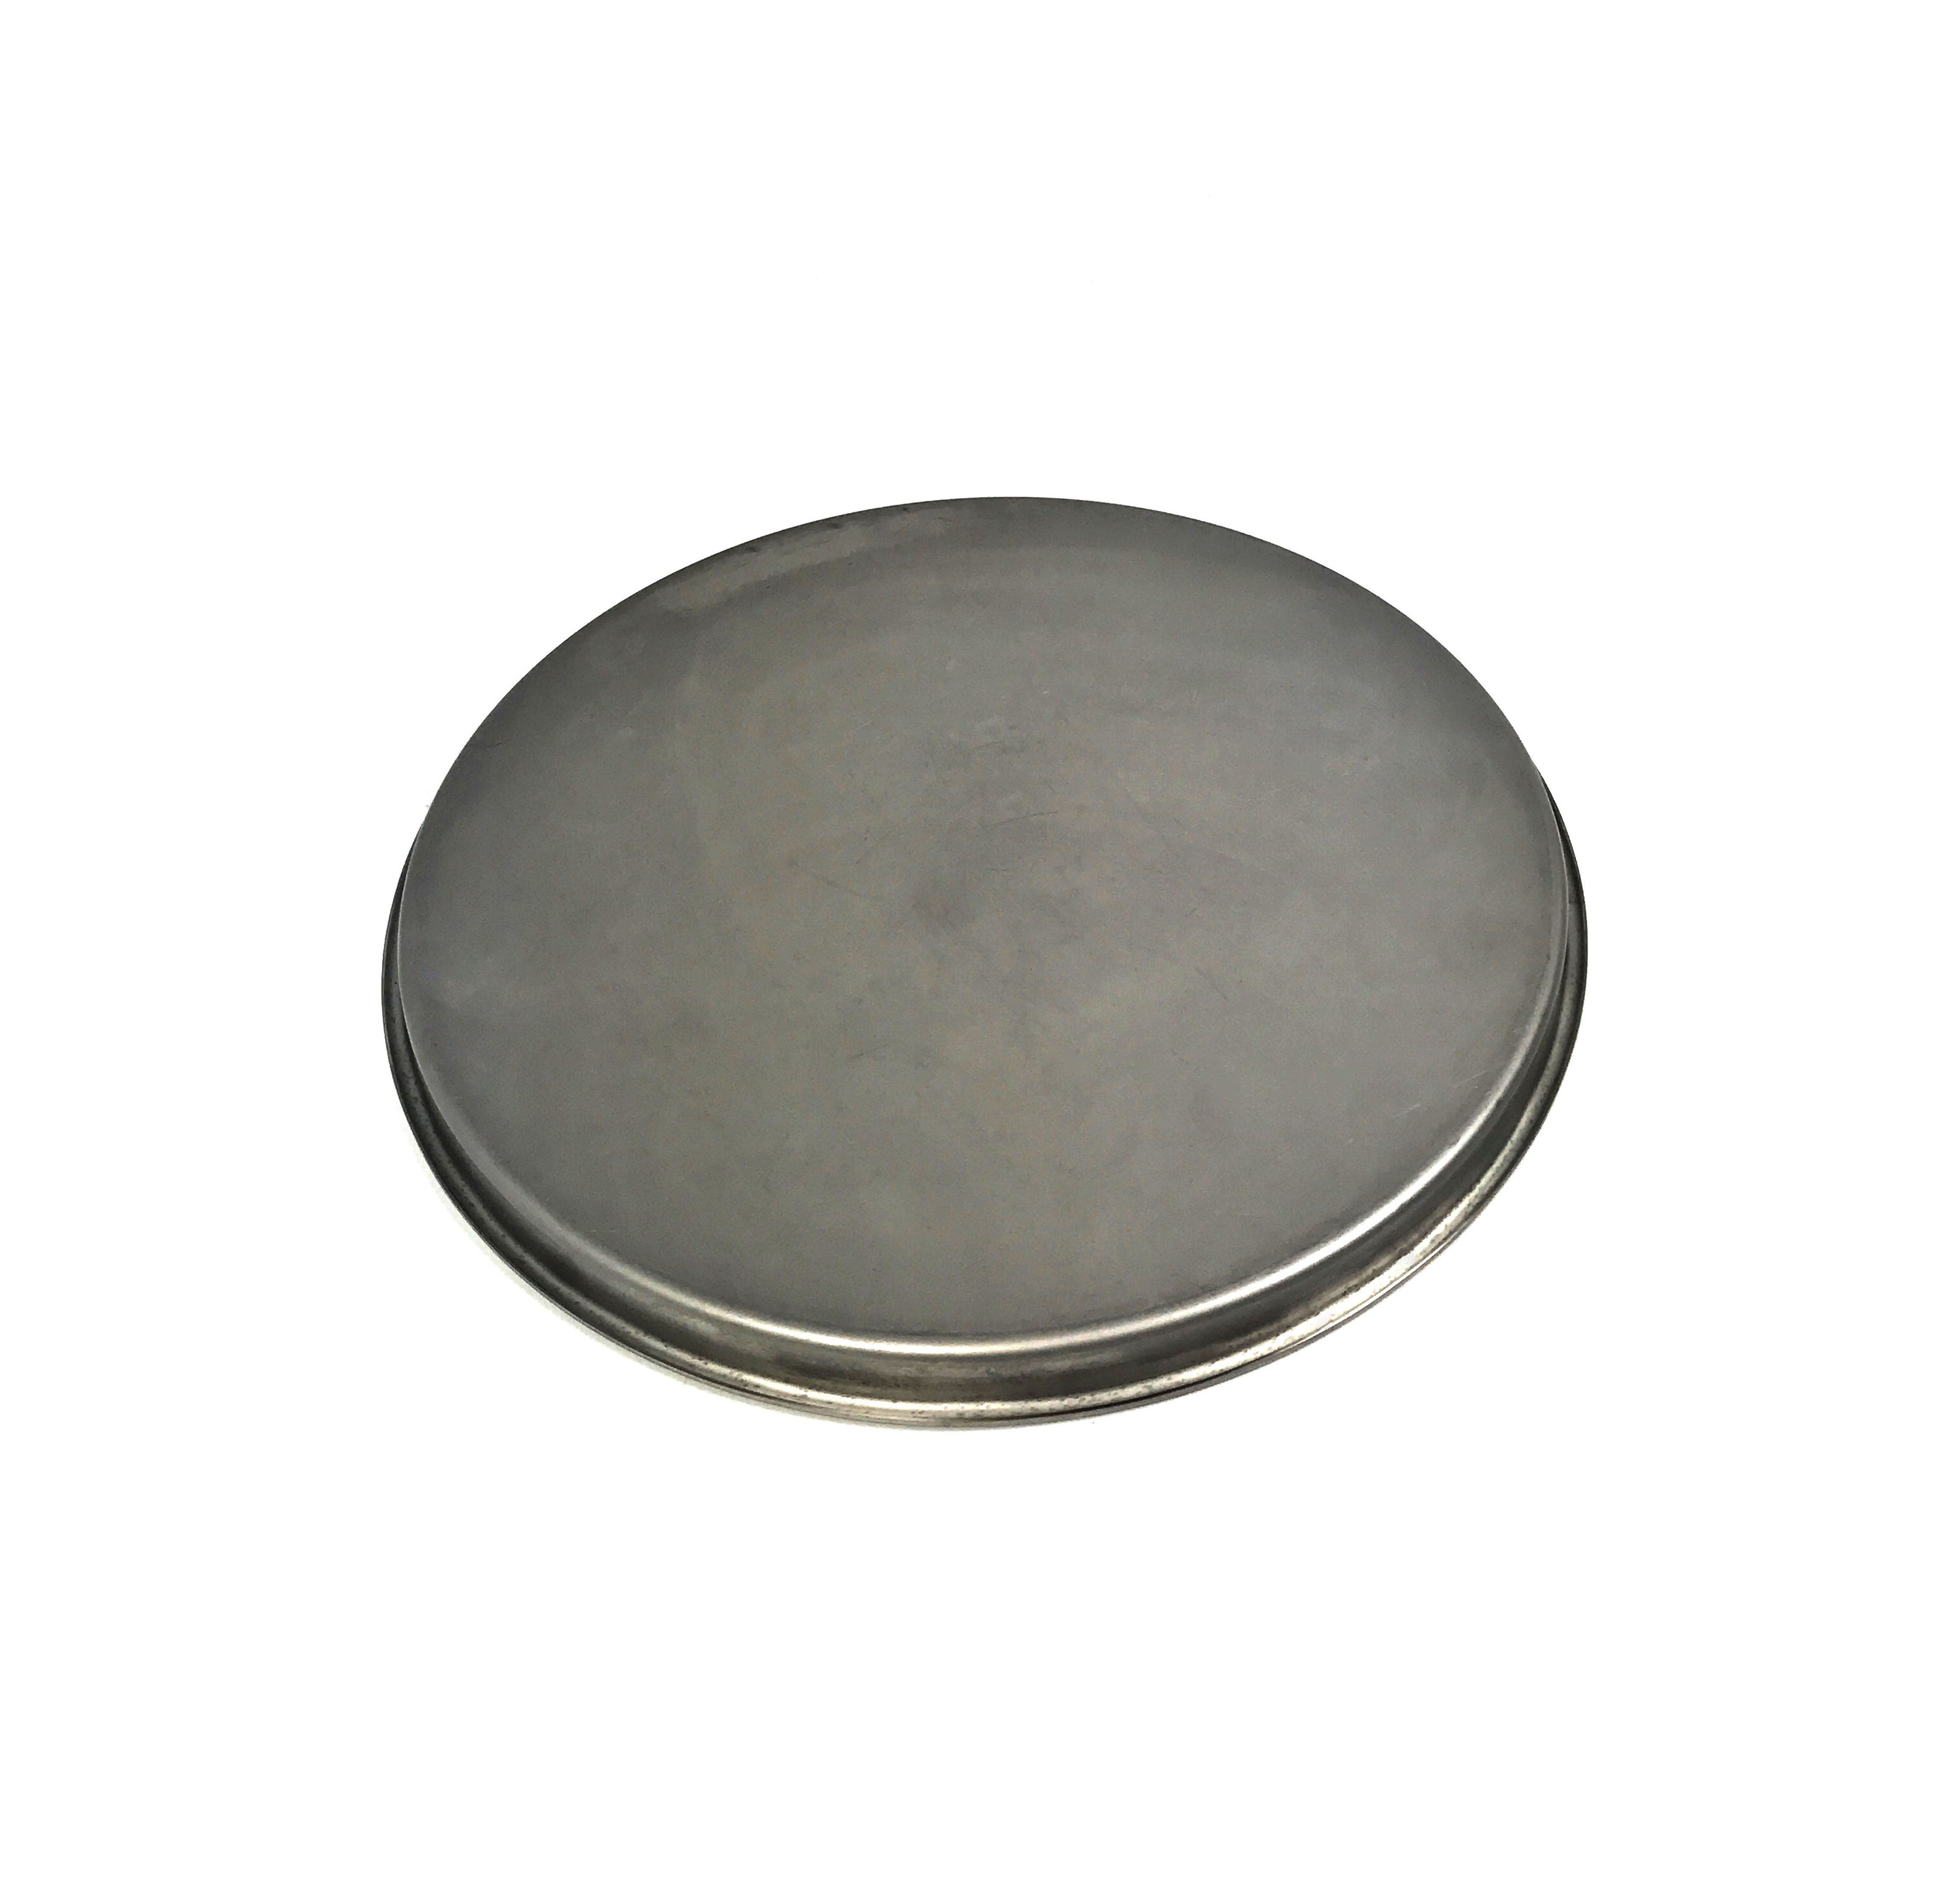 Stainless Steel Spun Lid